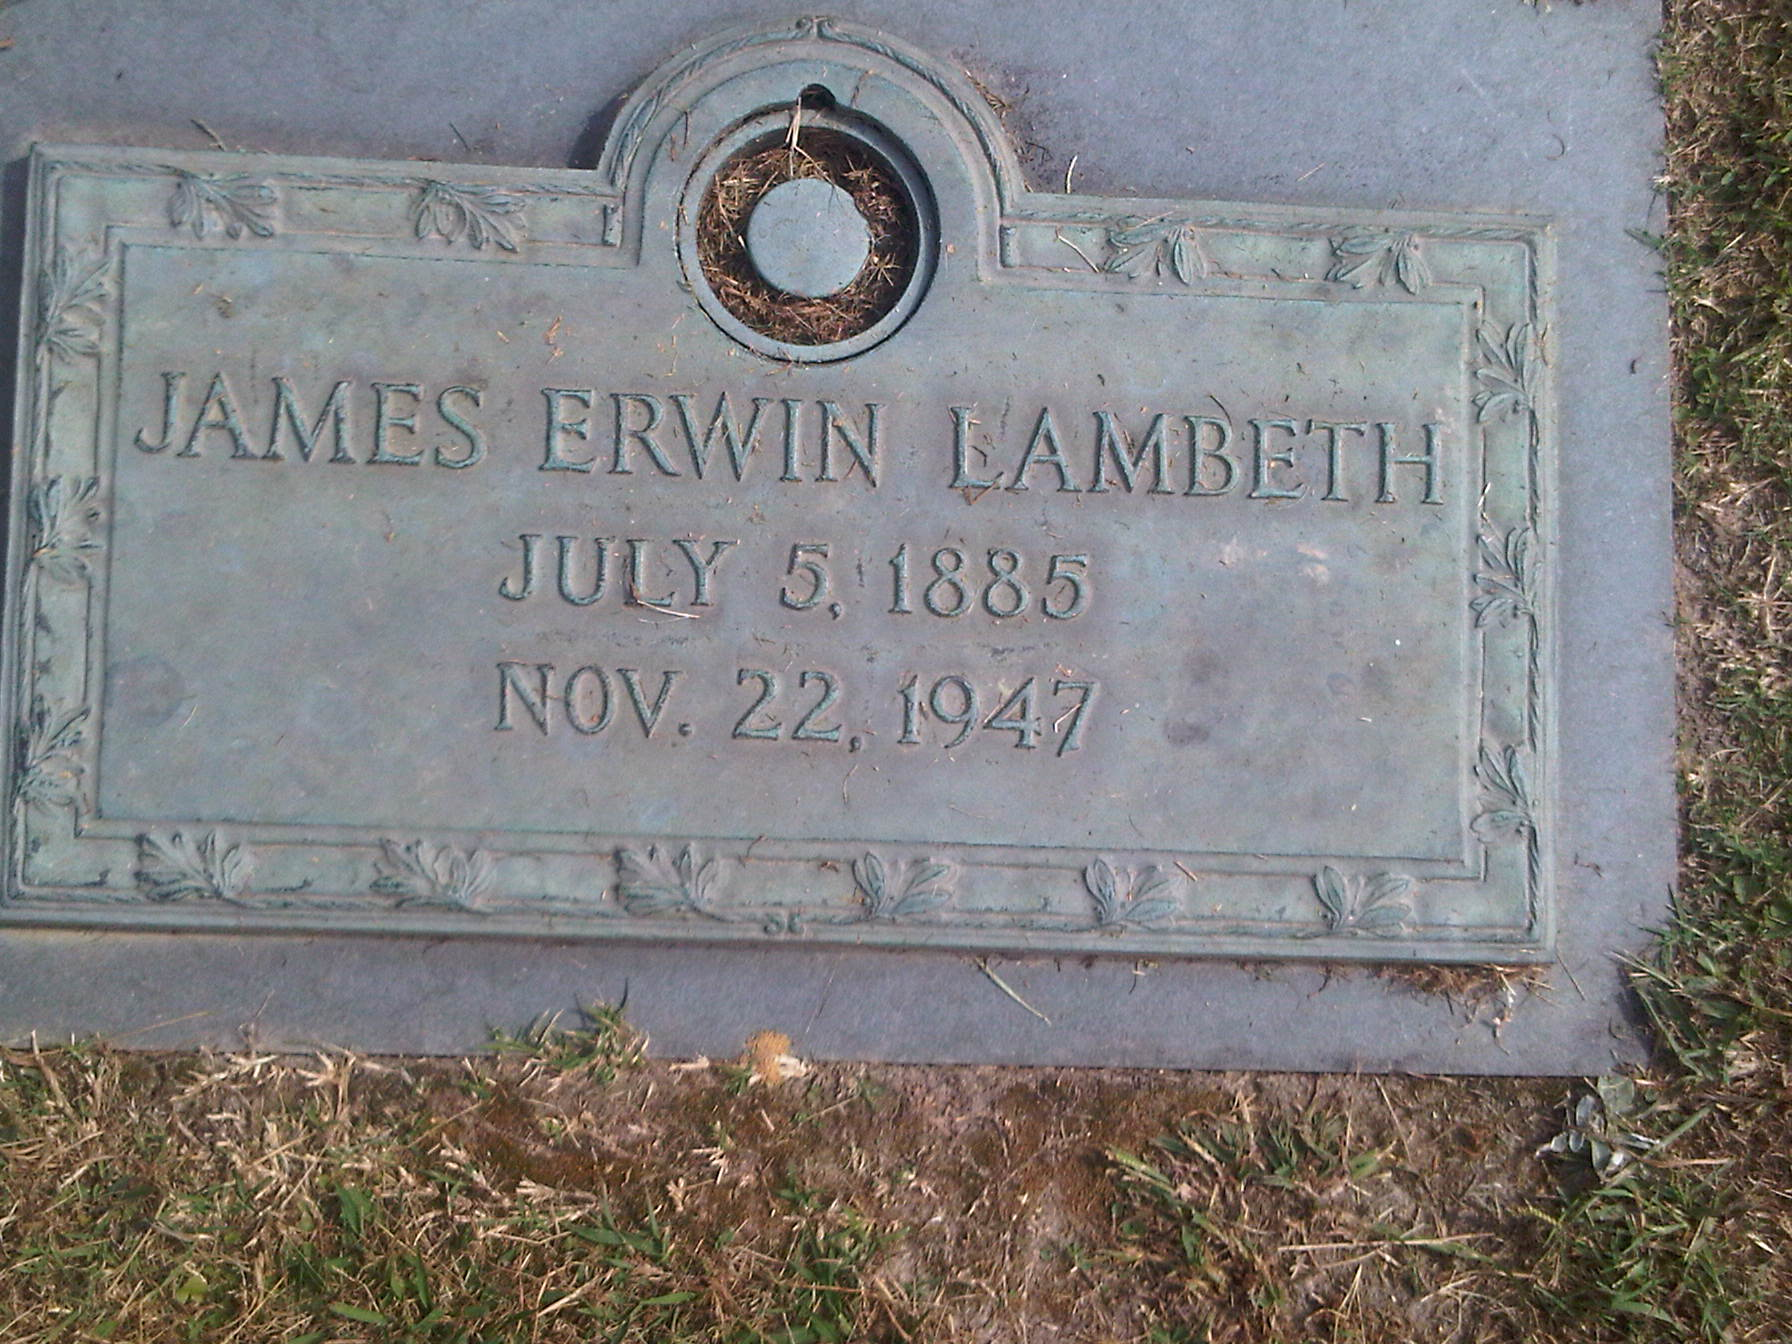 James Erwin Lambeth, Sr